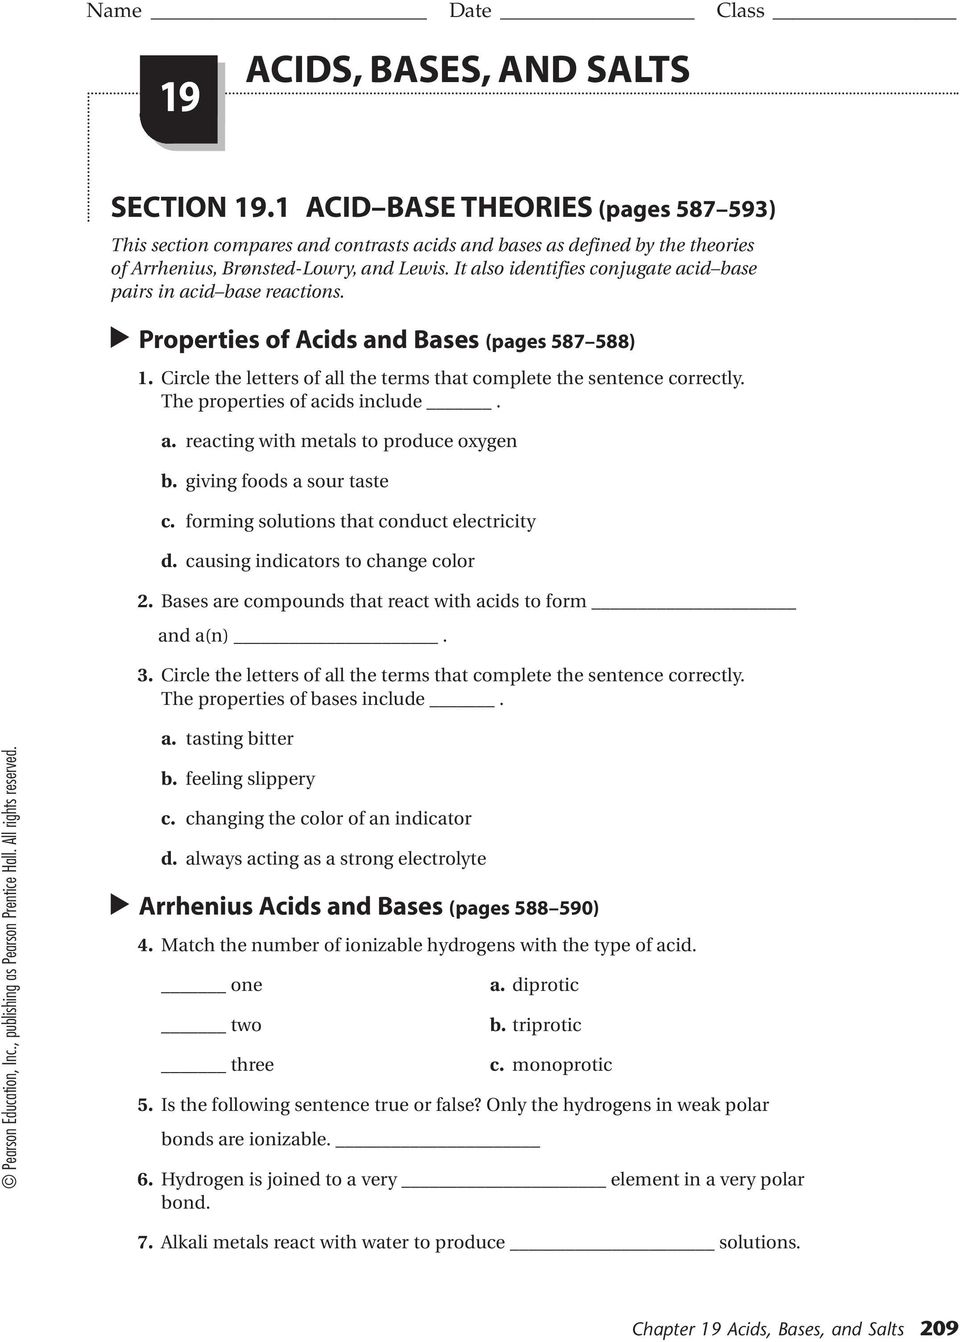 acid base reaction worksheet Termolak – Acid Base Titration Worksheet